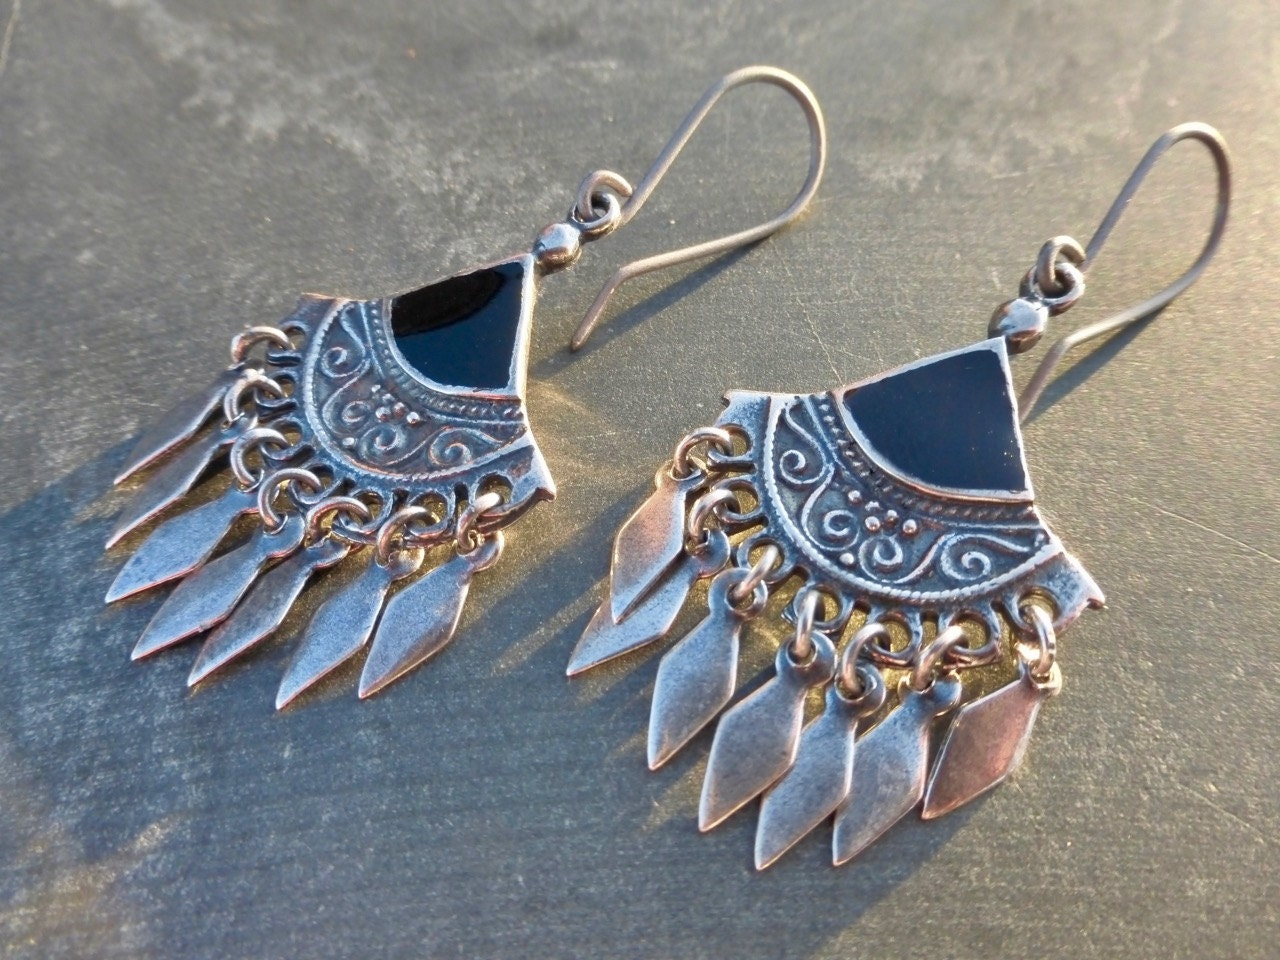 Antique Silver Ethnic Gypsy Boho Chandelier Drop Earrings With Black Inlay  Hypoallergenic Titanium OR Sterling Silver Ear Wires  Tribal